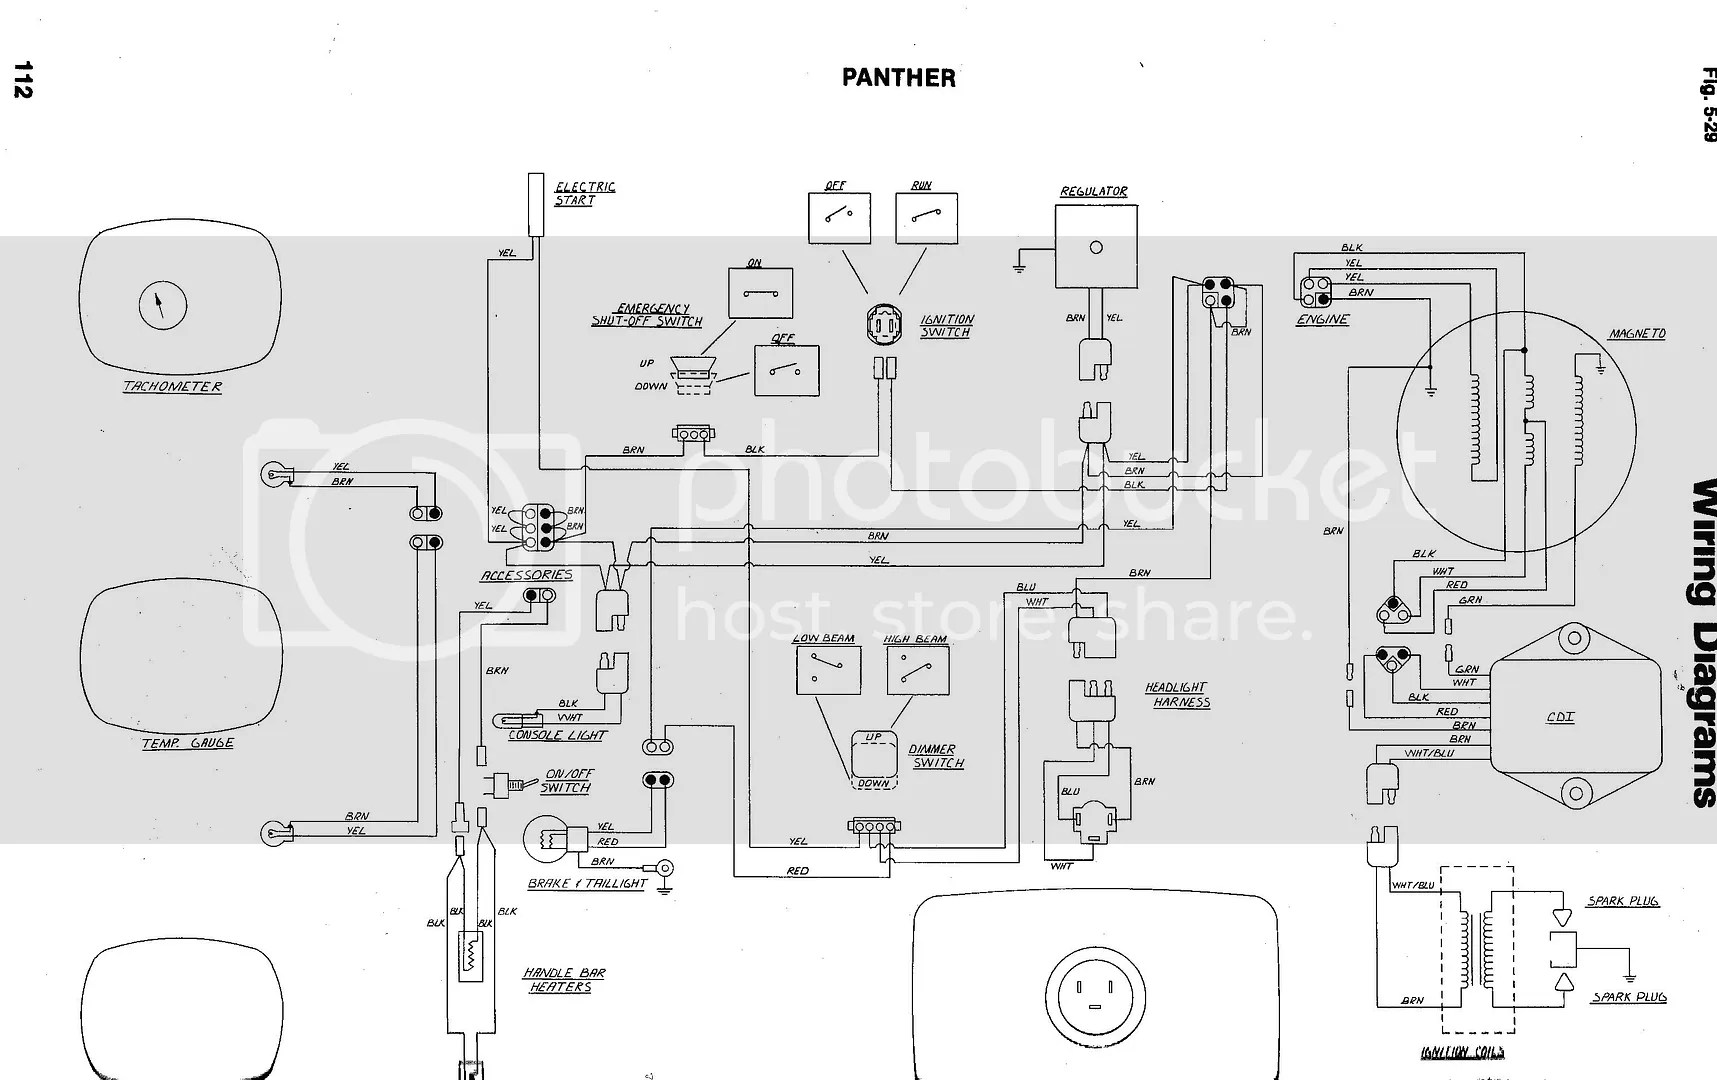 hight resolution of 93 wildcat wiring diagram wiring diagram portal 2005 arctic cat models arctic cat wildcat 650 wiring diagram